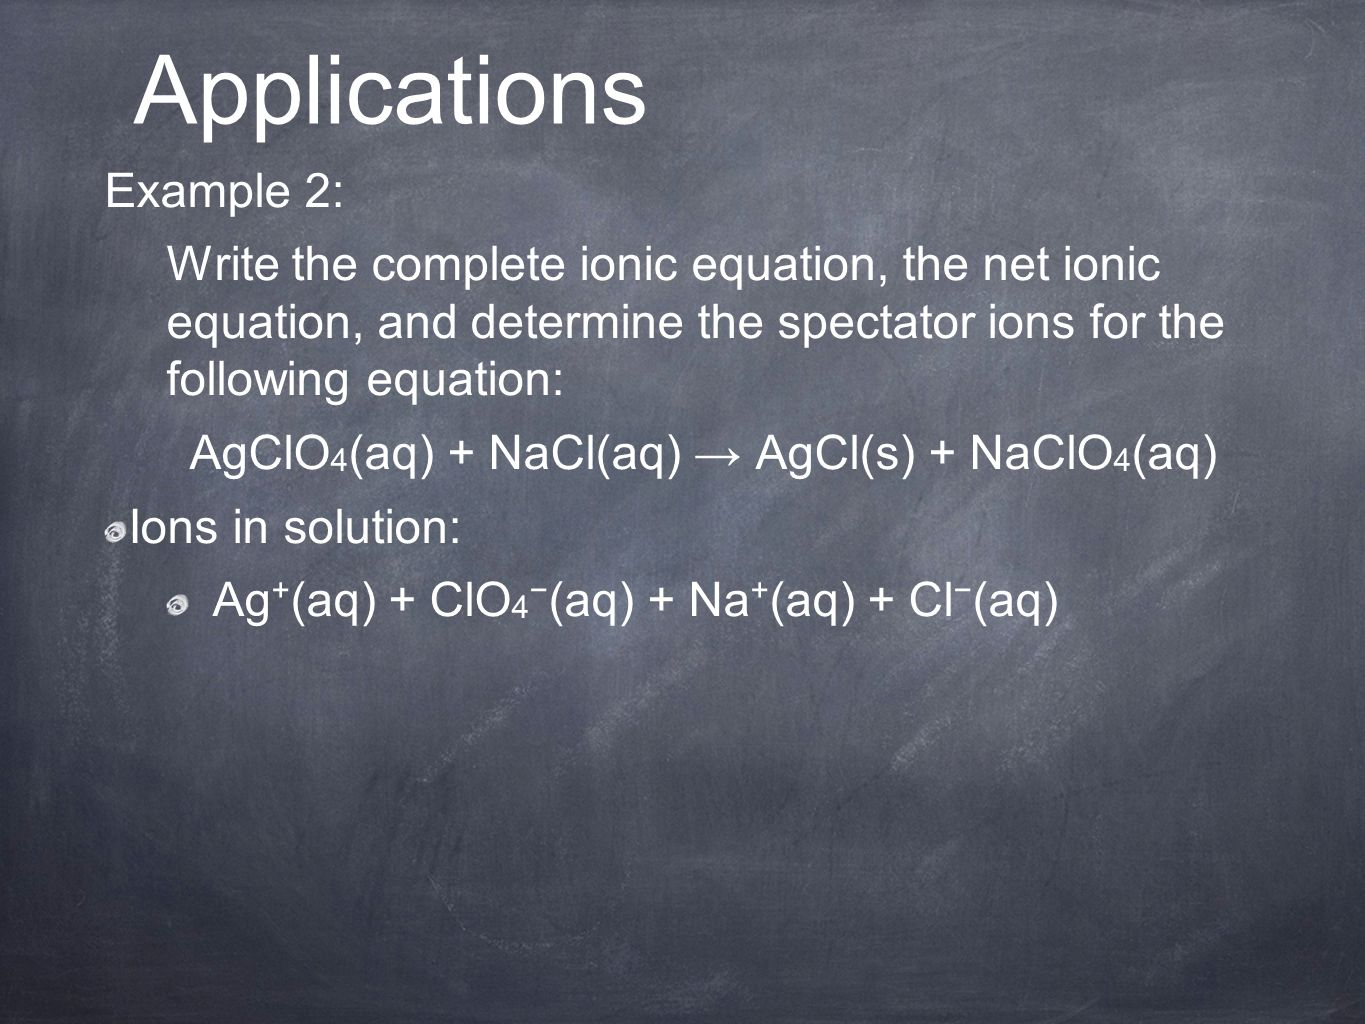 Example 2: Write the complete ionic equation, the net ionic equation, and determine the spectator ions for the following equation: AgClO 4 (aq) + NaCl(aq) → AgCl(s) + NaClO 4 (aq) Ions in solution: Ag + (aq) + ClO 4 − (aq) + Na + (aq) + Cl − (aq) Applications